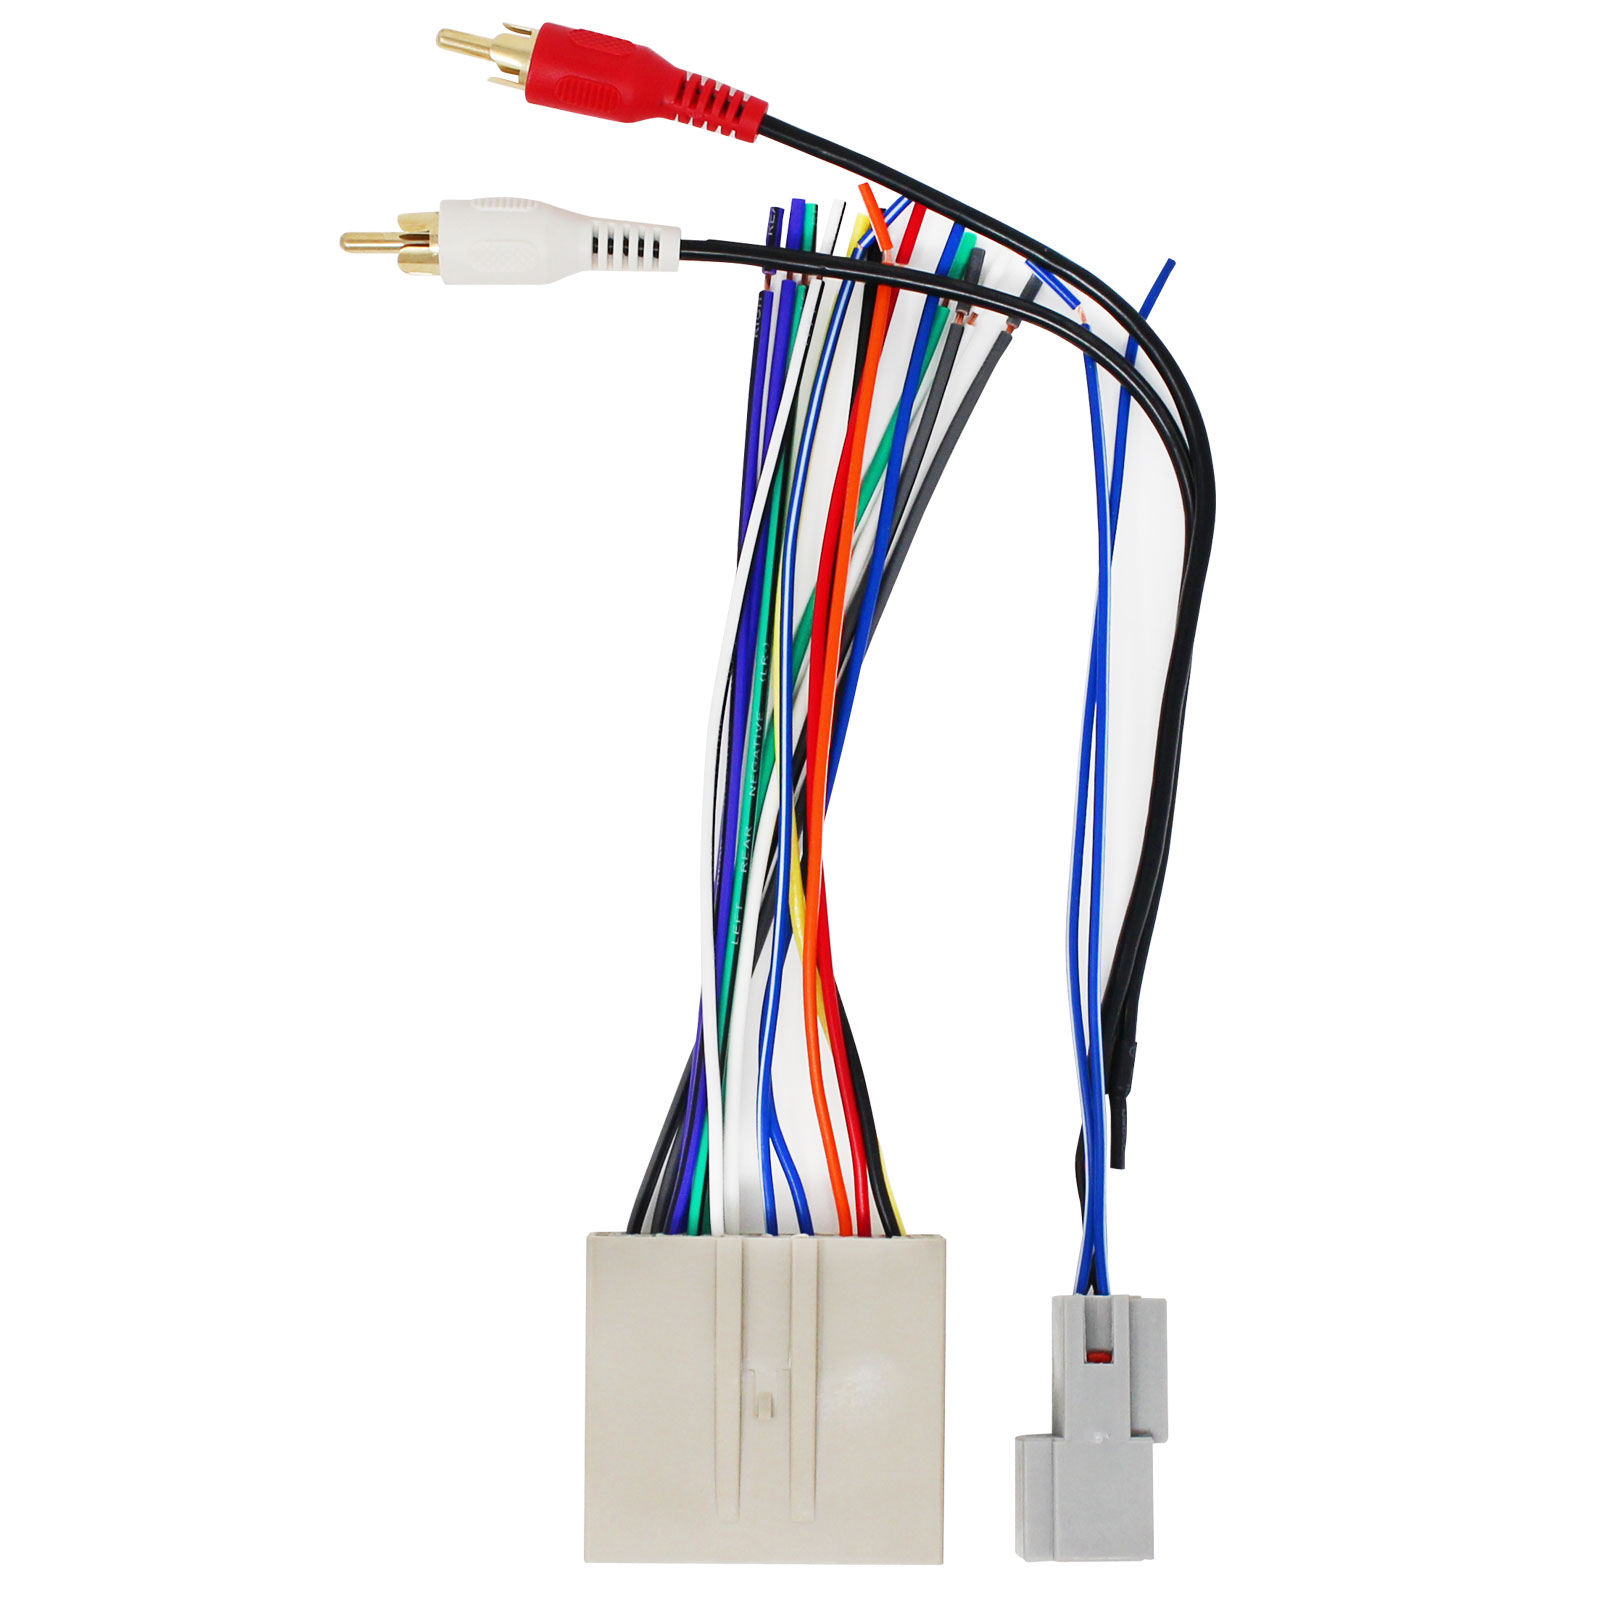 replacement radio wiring harness for 2005 ford escape 2003 ford 2008 ford explorer wiring harness [ 1600 x 1600 Pixel ]